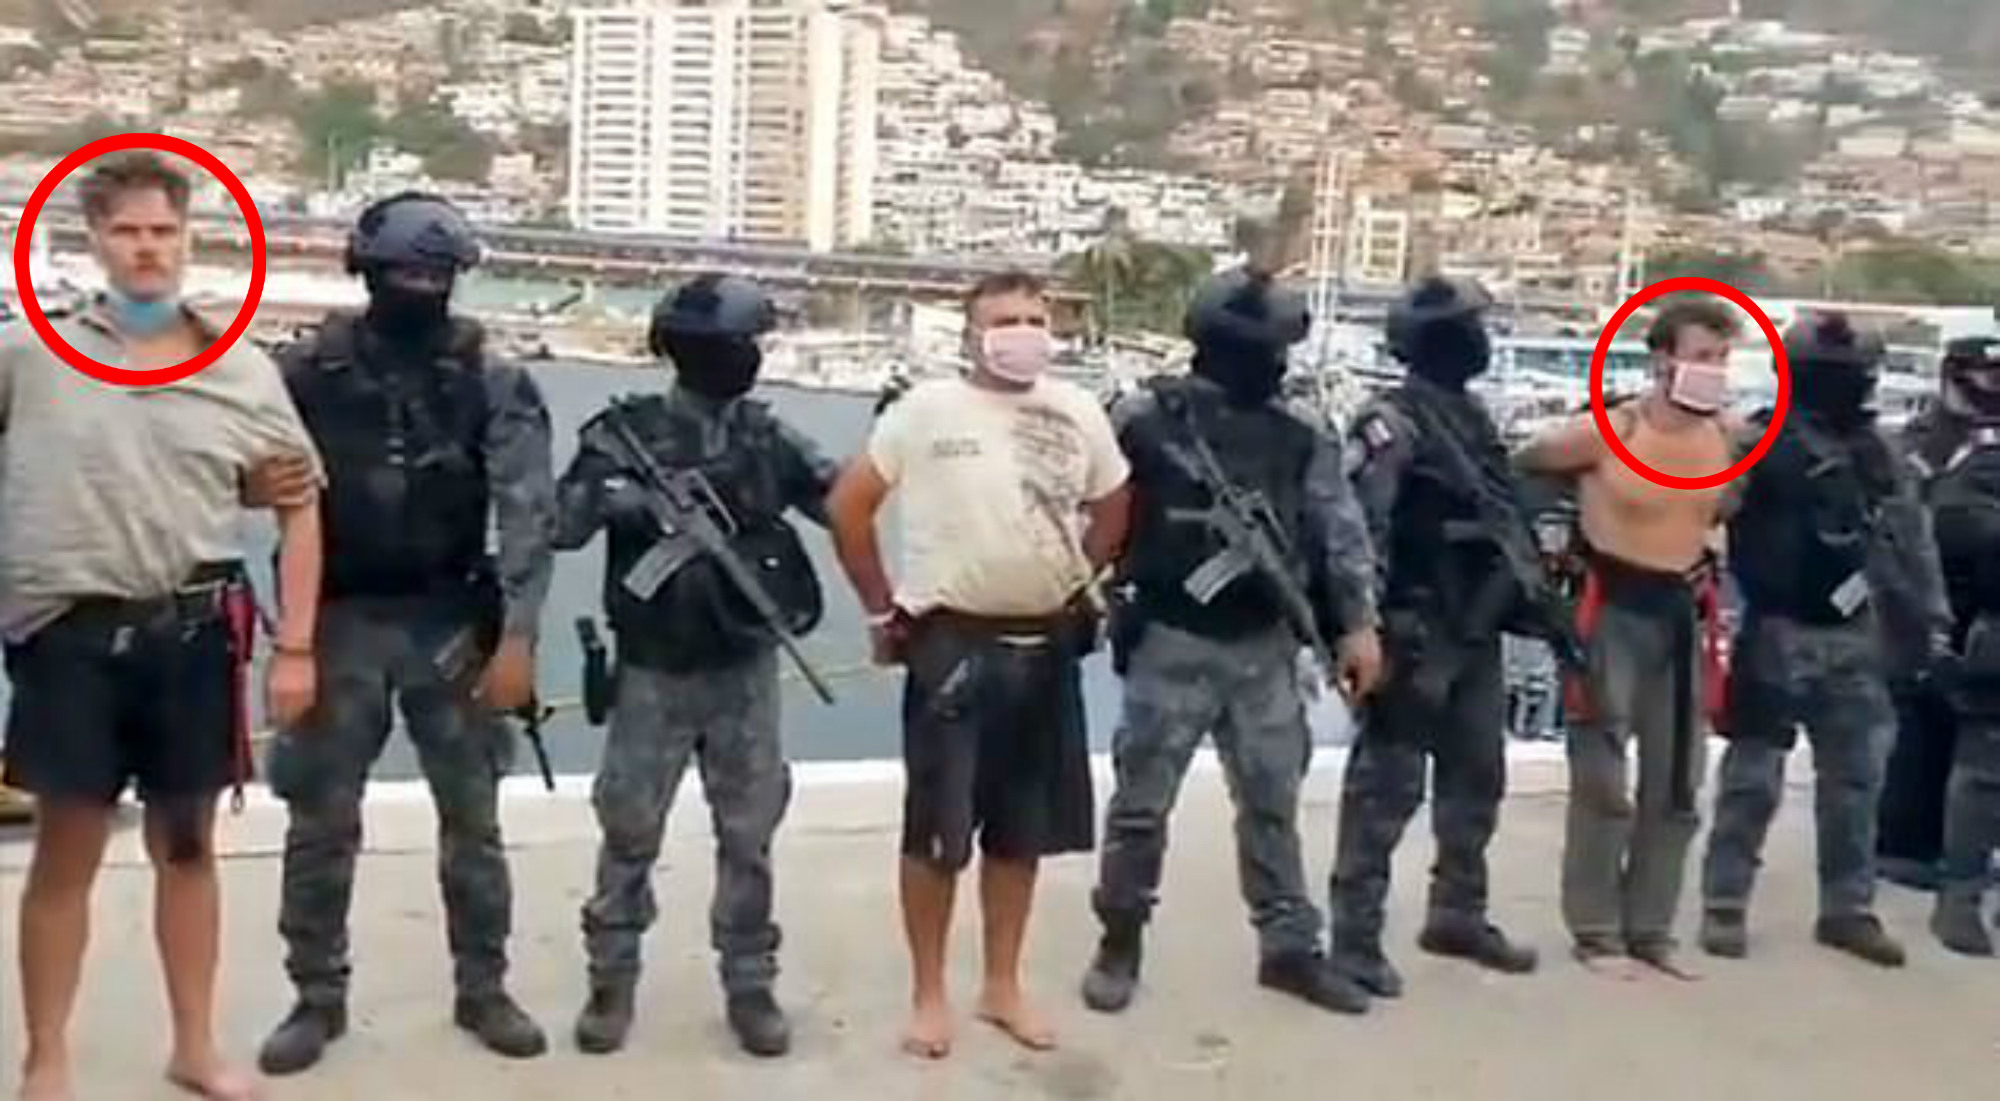 Arrested and paraded: Airan Berry (circled on the right) and Kuke Denman (circled on the left) int the port of La Guaira after the botched mission. (Quelle: Screenshot/TeleSur)